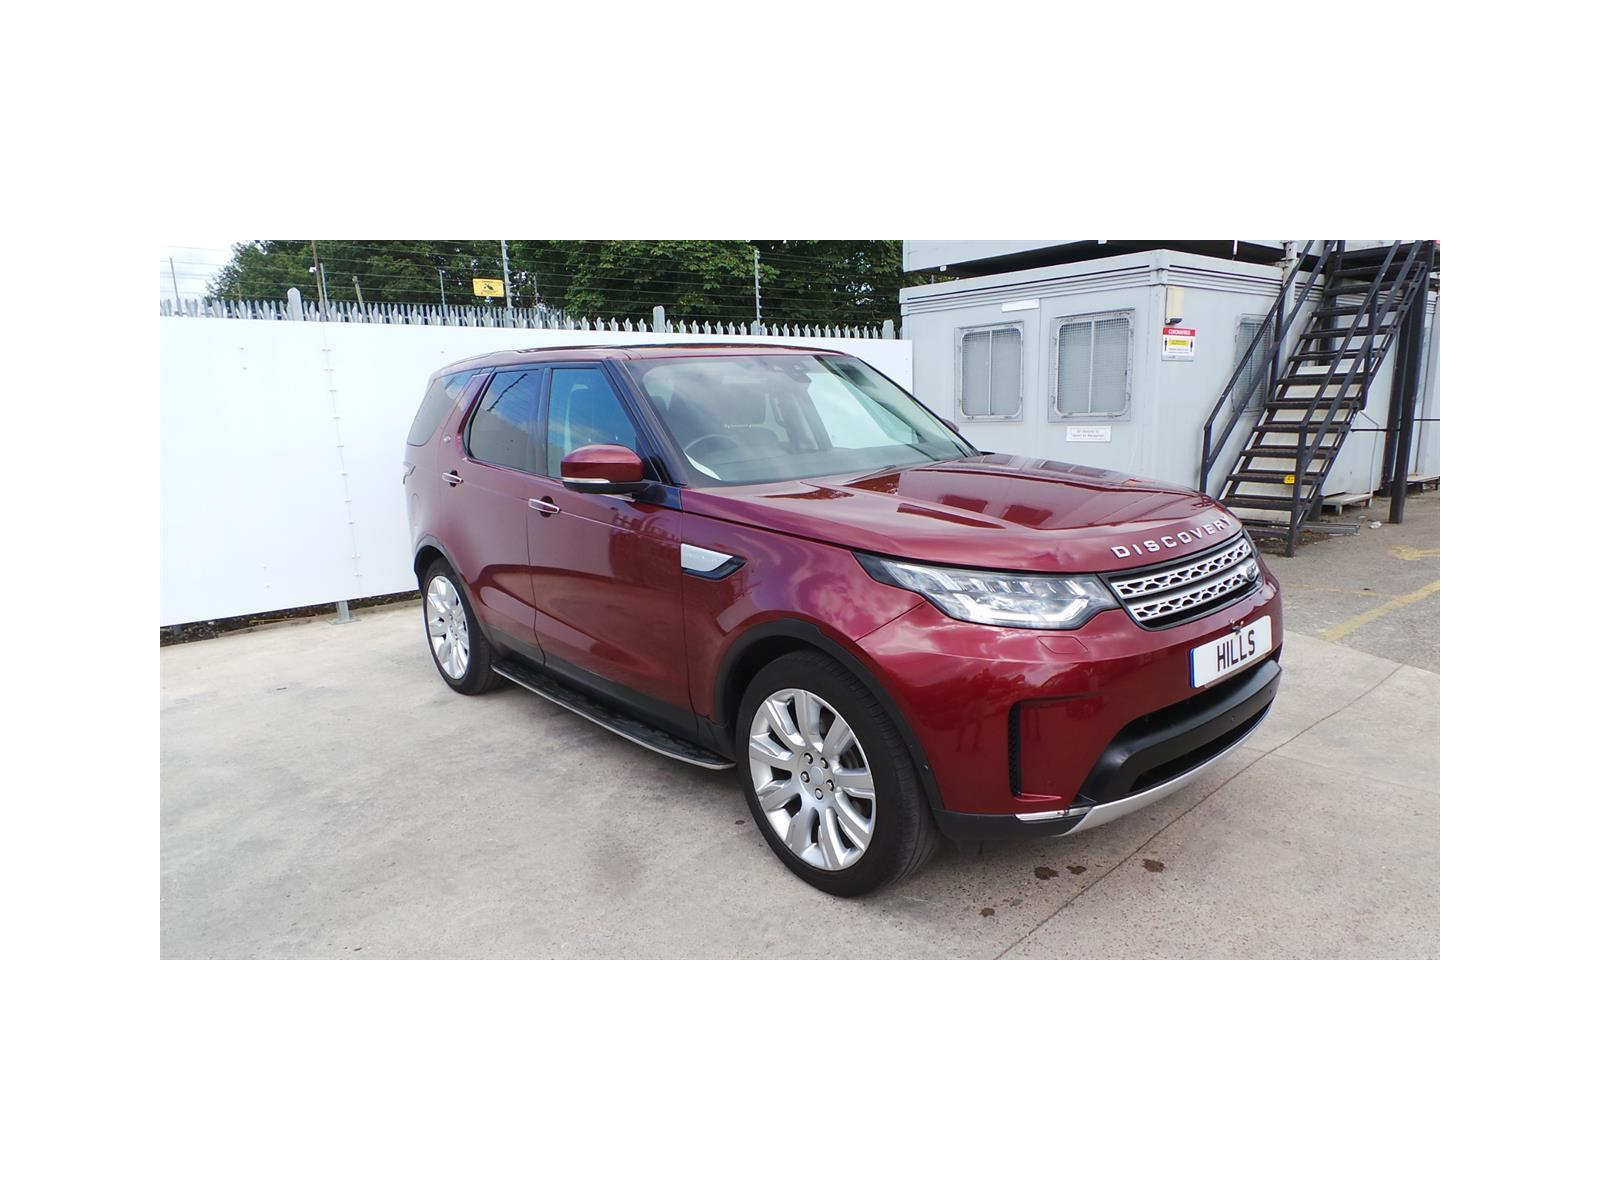 2017 Land Rover Discovery SD4 HSE LUXURY 1999cc TURBO Diesel Automatic 8 Speed ESTATE